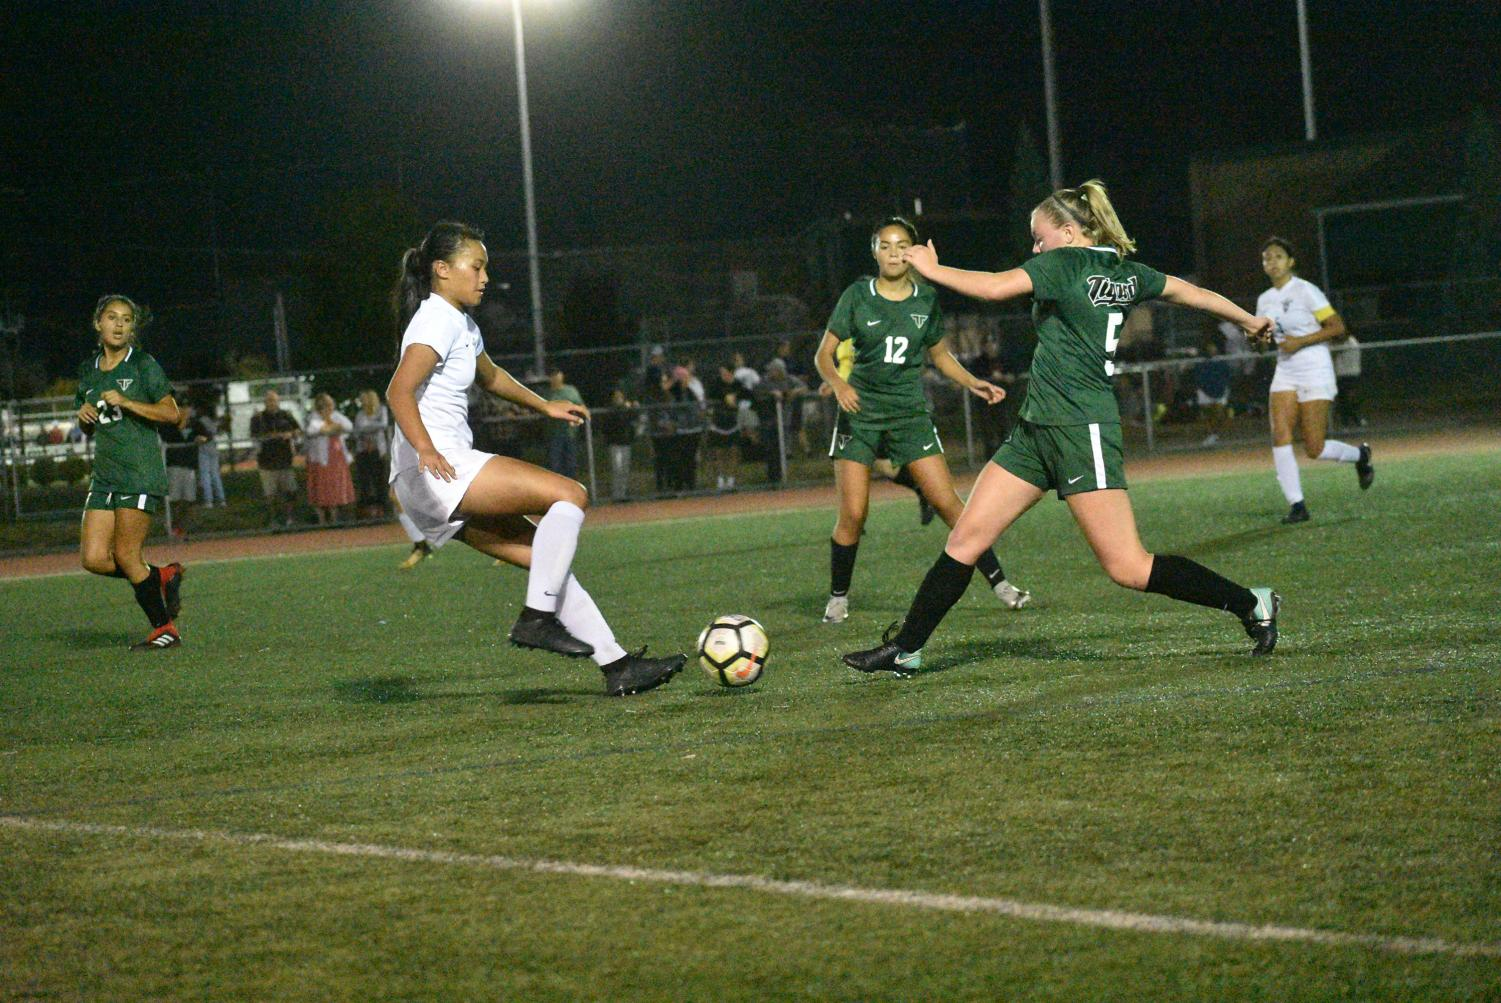 Varsity soccer player, senior Sydney Leinberger, surges through Liberty's defense. Tigard won the Sept. 27 game 5-0.